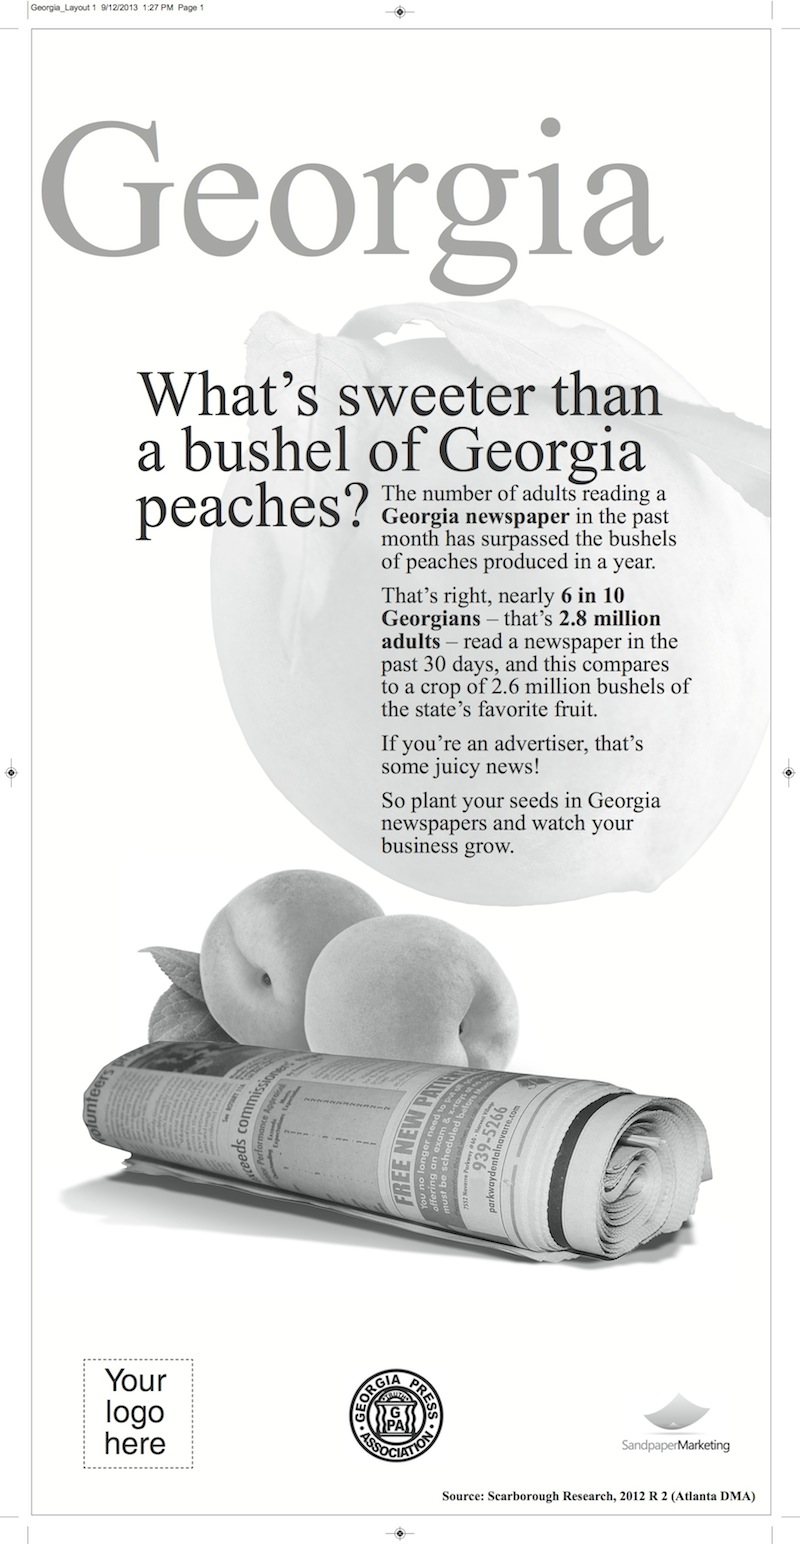 """Georgia's ad takes a similar agricultural tack, and it suggests something that may be frowned upon in polite company: """"plant your seeds in Georgia newspapers,"""" it urges."""